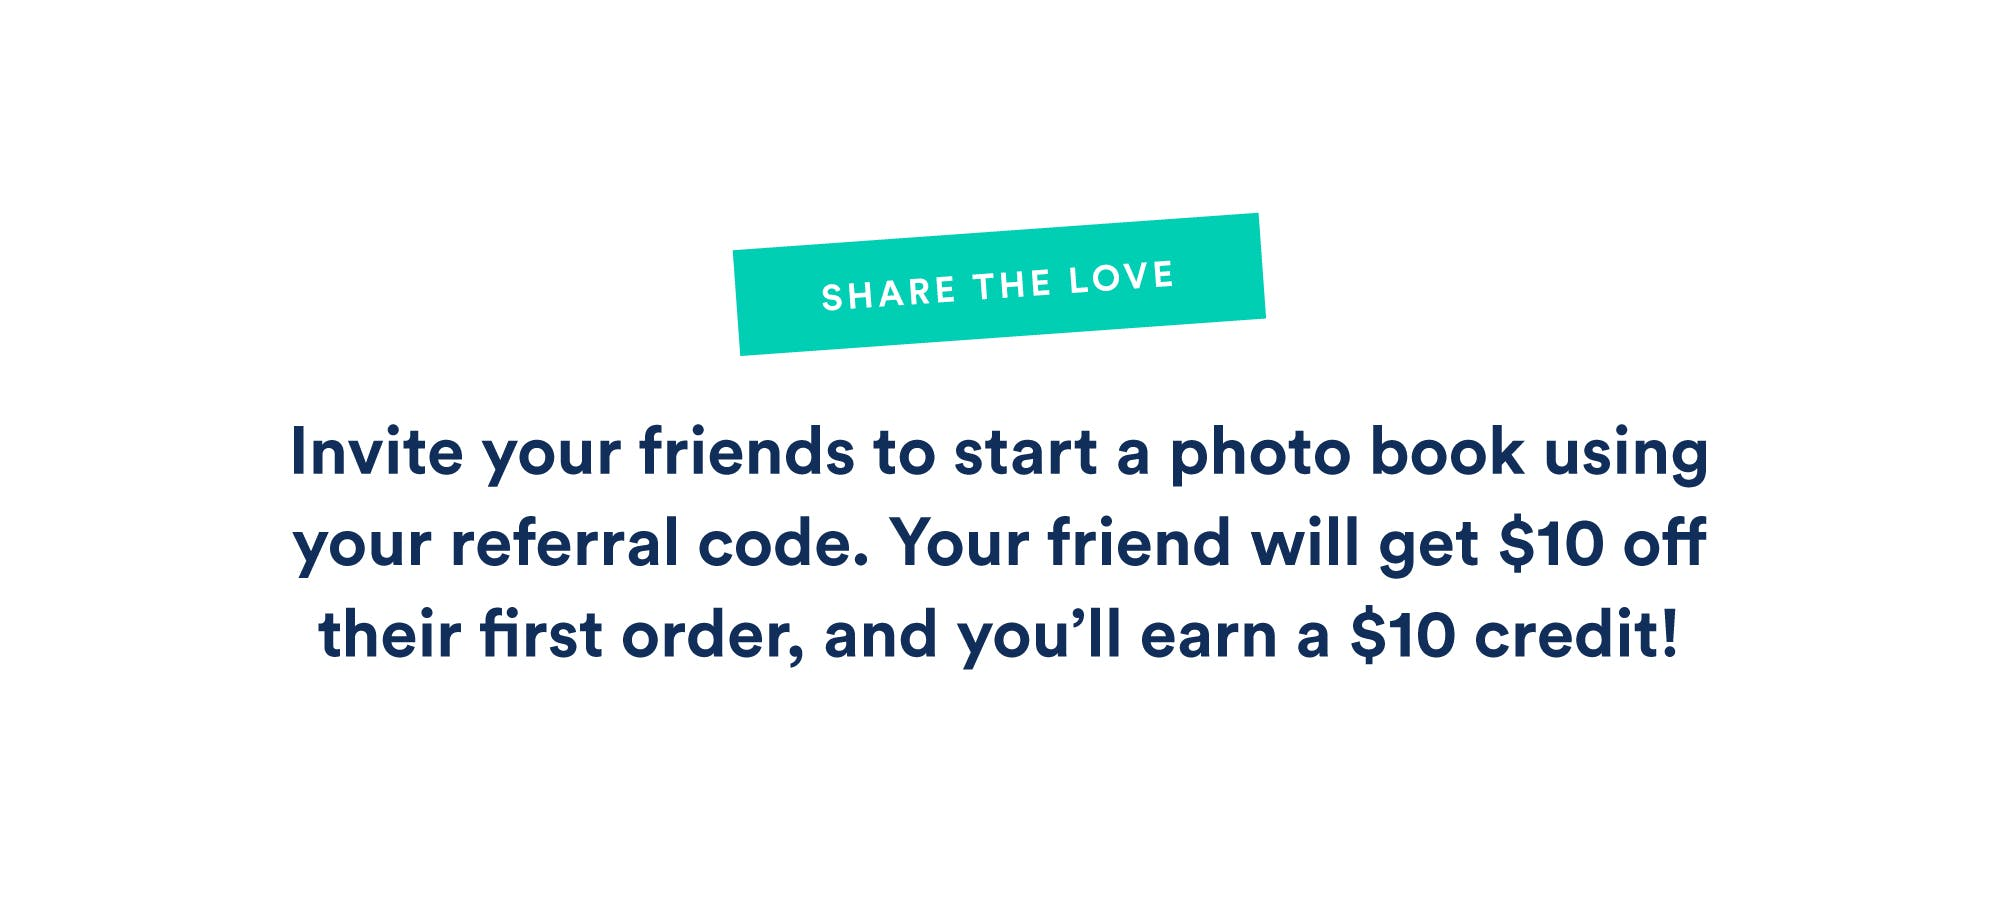 Invite your friends to start a photo book using your referral code.  Your friend will get \u002410 off their first order, and you'll earn a \u002410 credit (up to \u0024100).